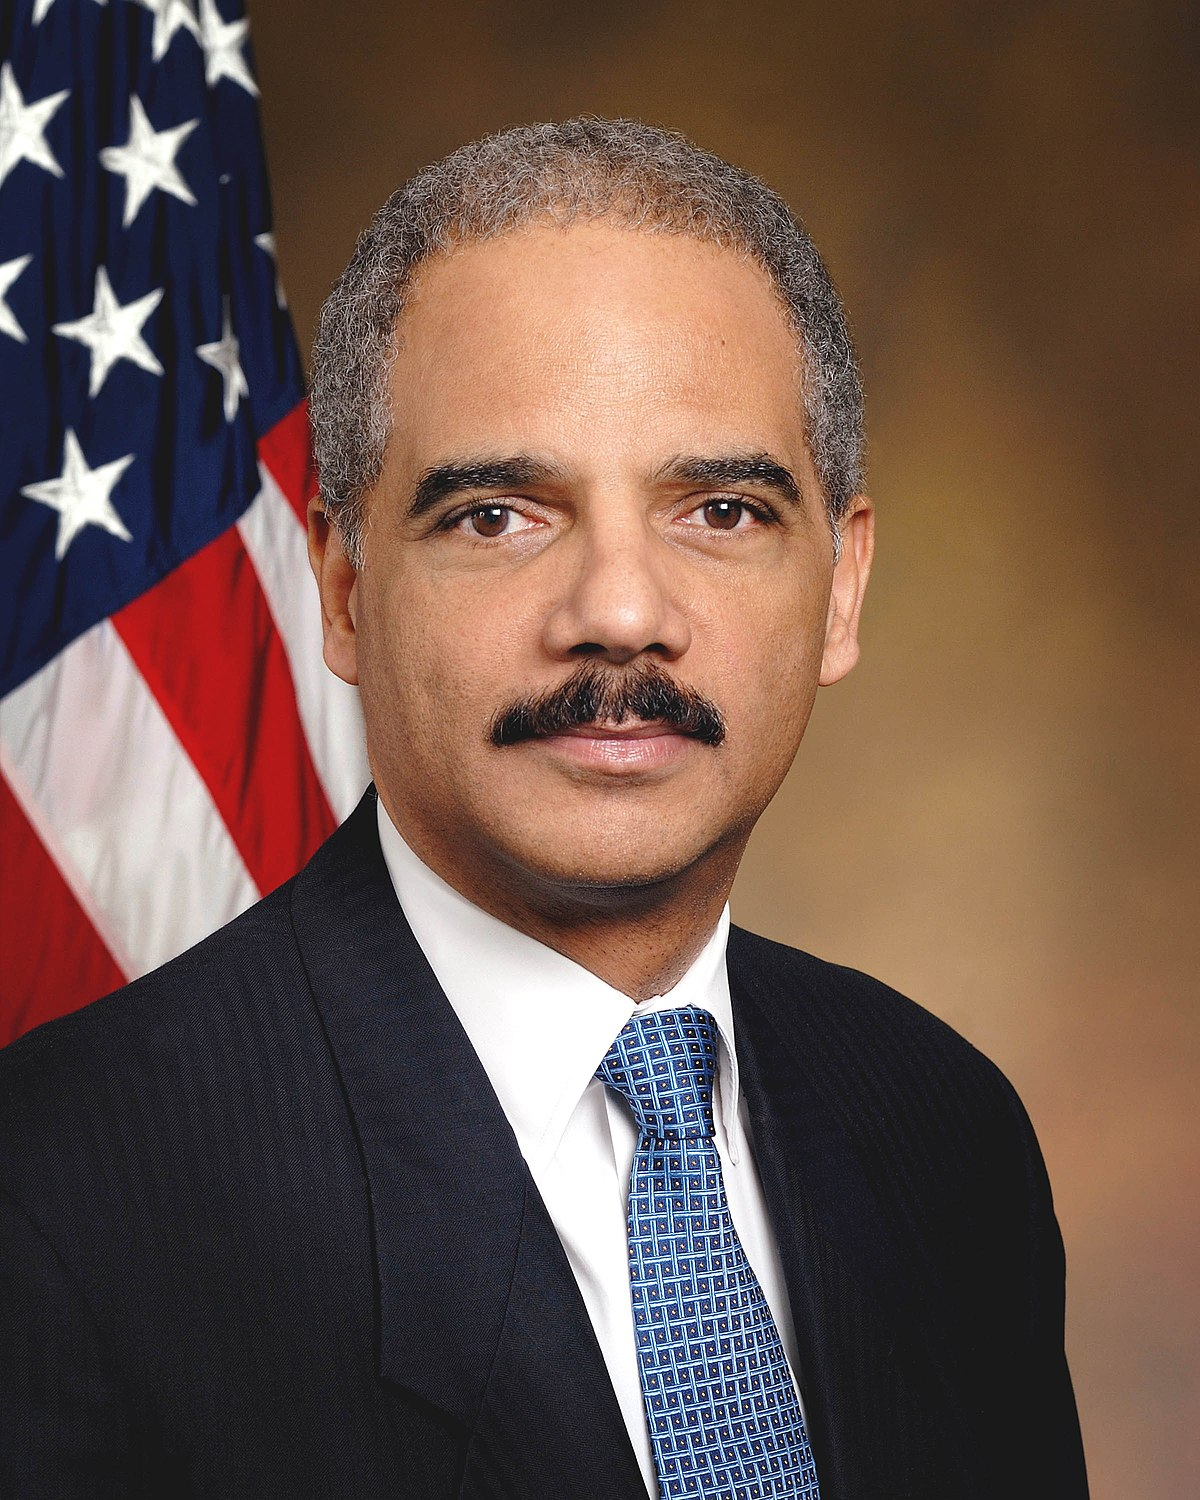 eric holder wikipedia - Attorney General Job Description